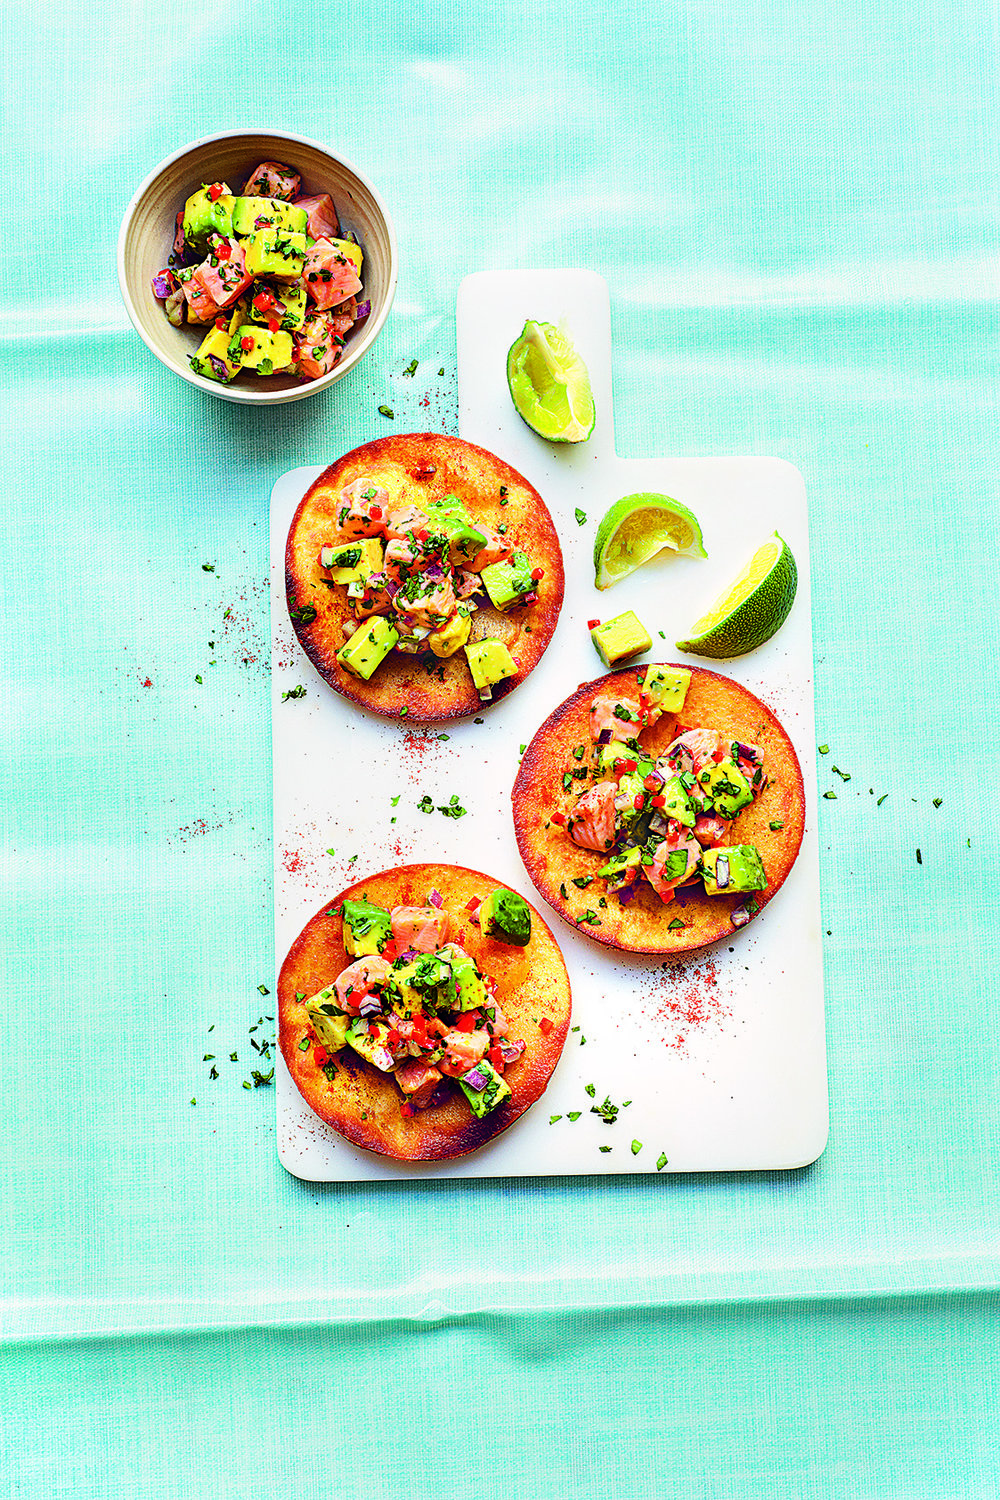 Avo Salmon Ceviche with Tostadas Photograph Clare Winfield, Prop Styling Wei Tang (from The Goodness of Avocado)